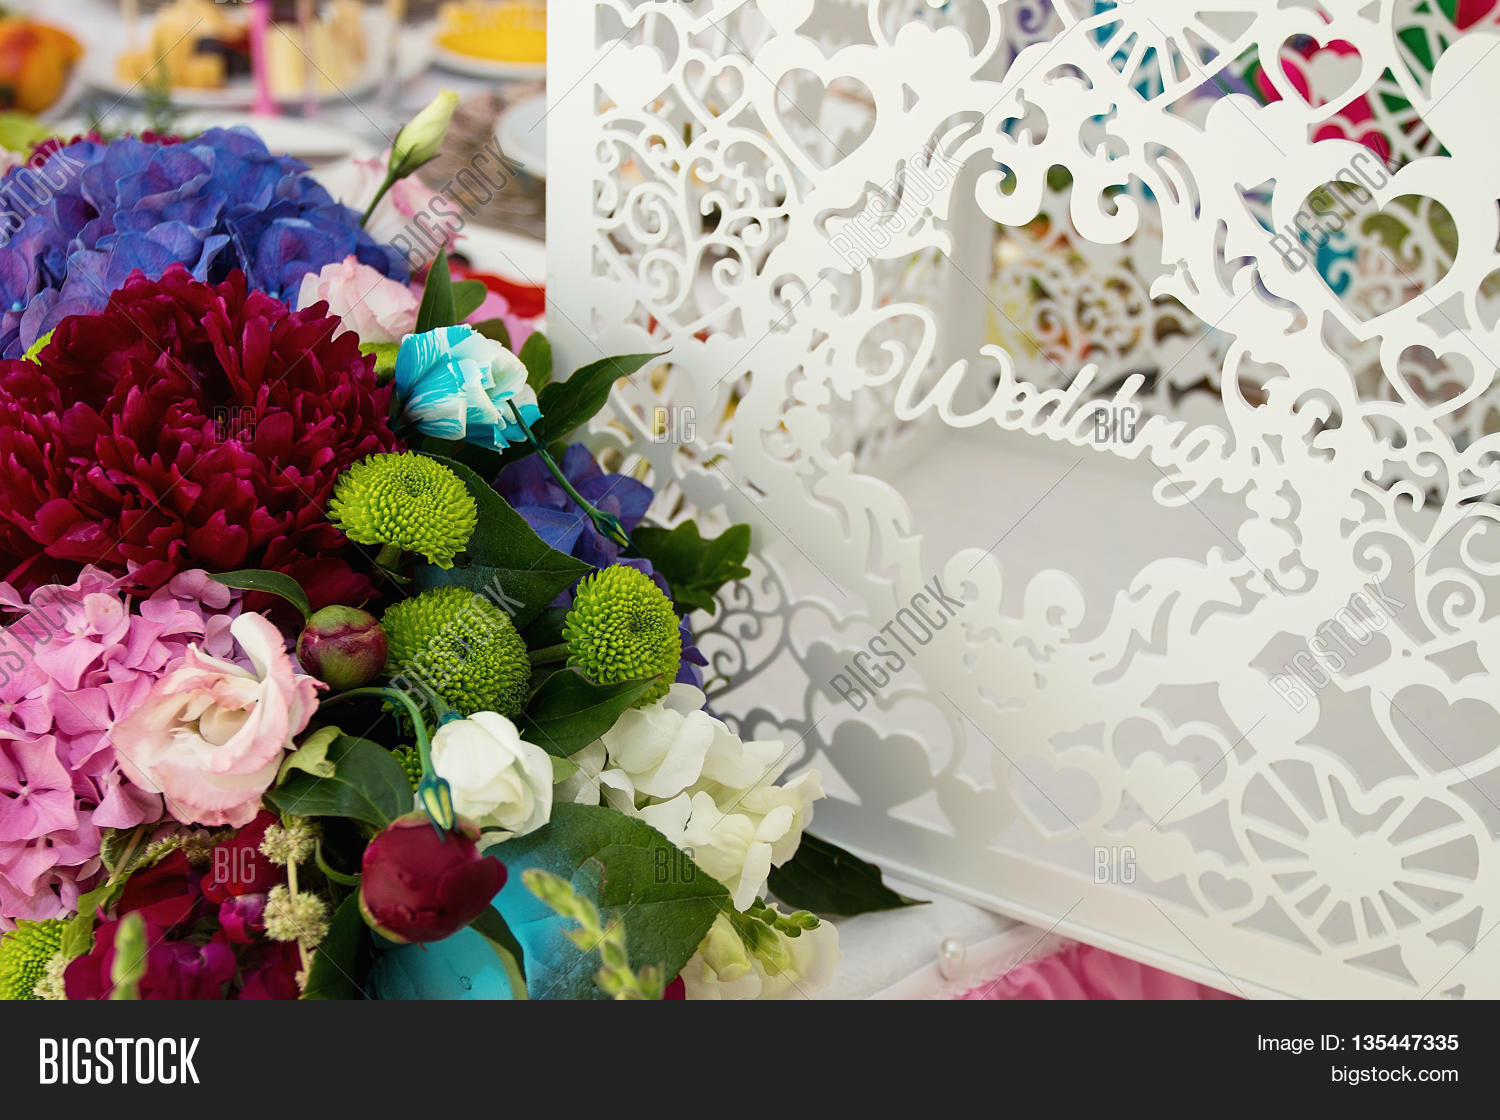 White purple flowers image photo free trial bigstock white and purple flowers wedding accessories wedding preparation decorated wedding table with flowers wedding flowers food izmirmasajfo